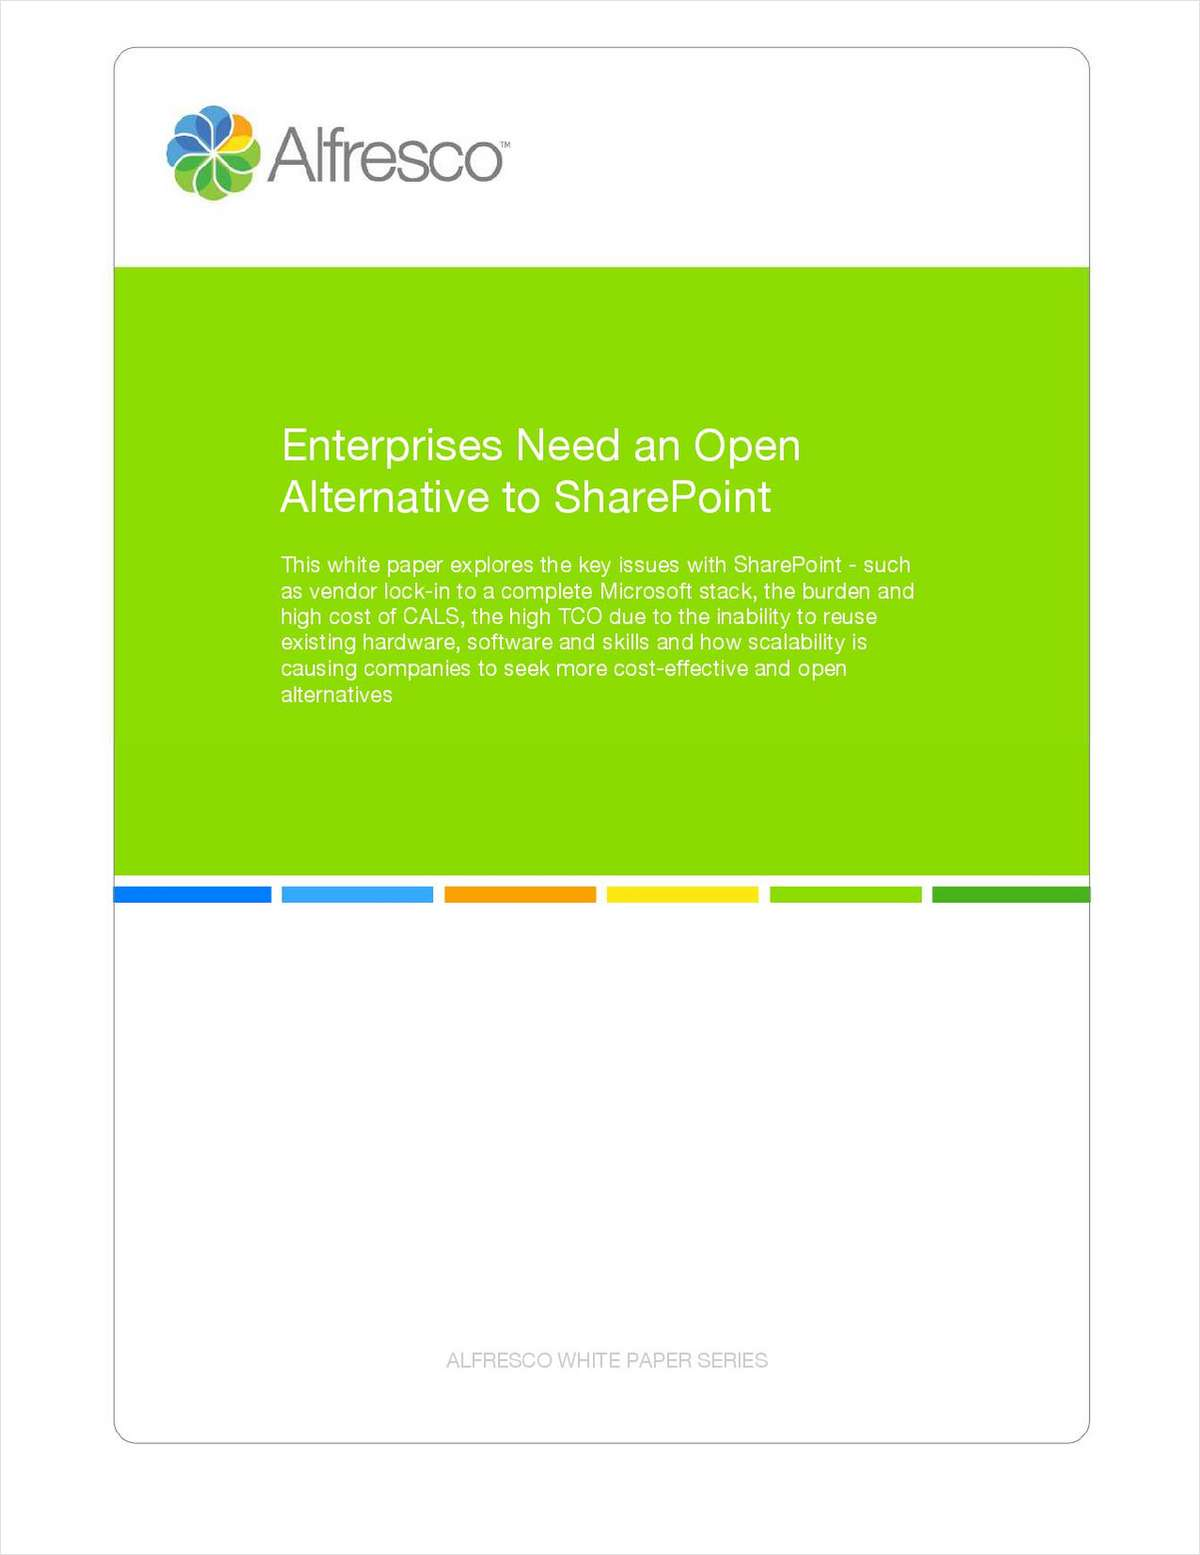 Why Enterprises Need an Open Alternative to SharePoint